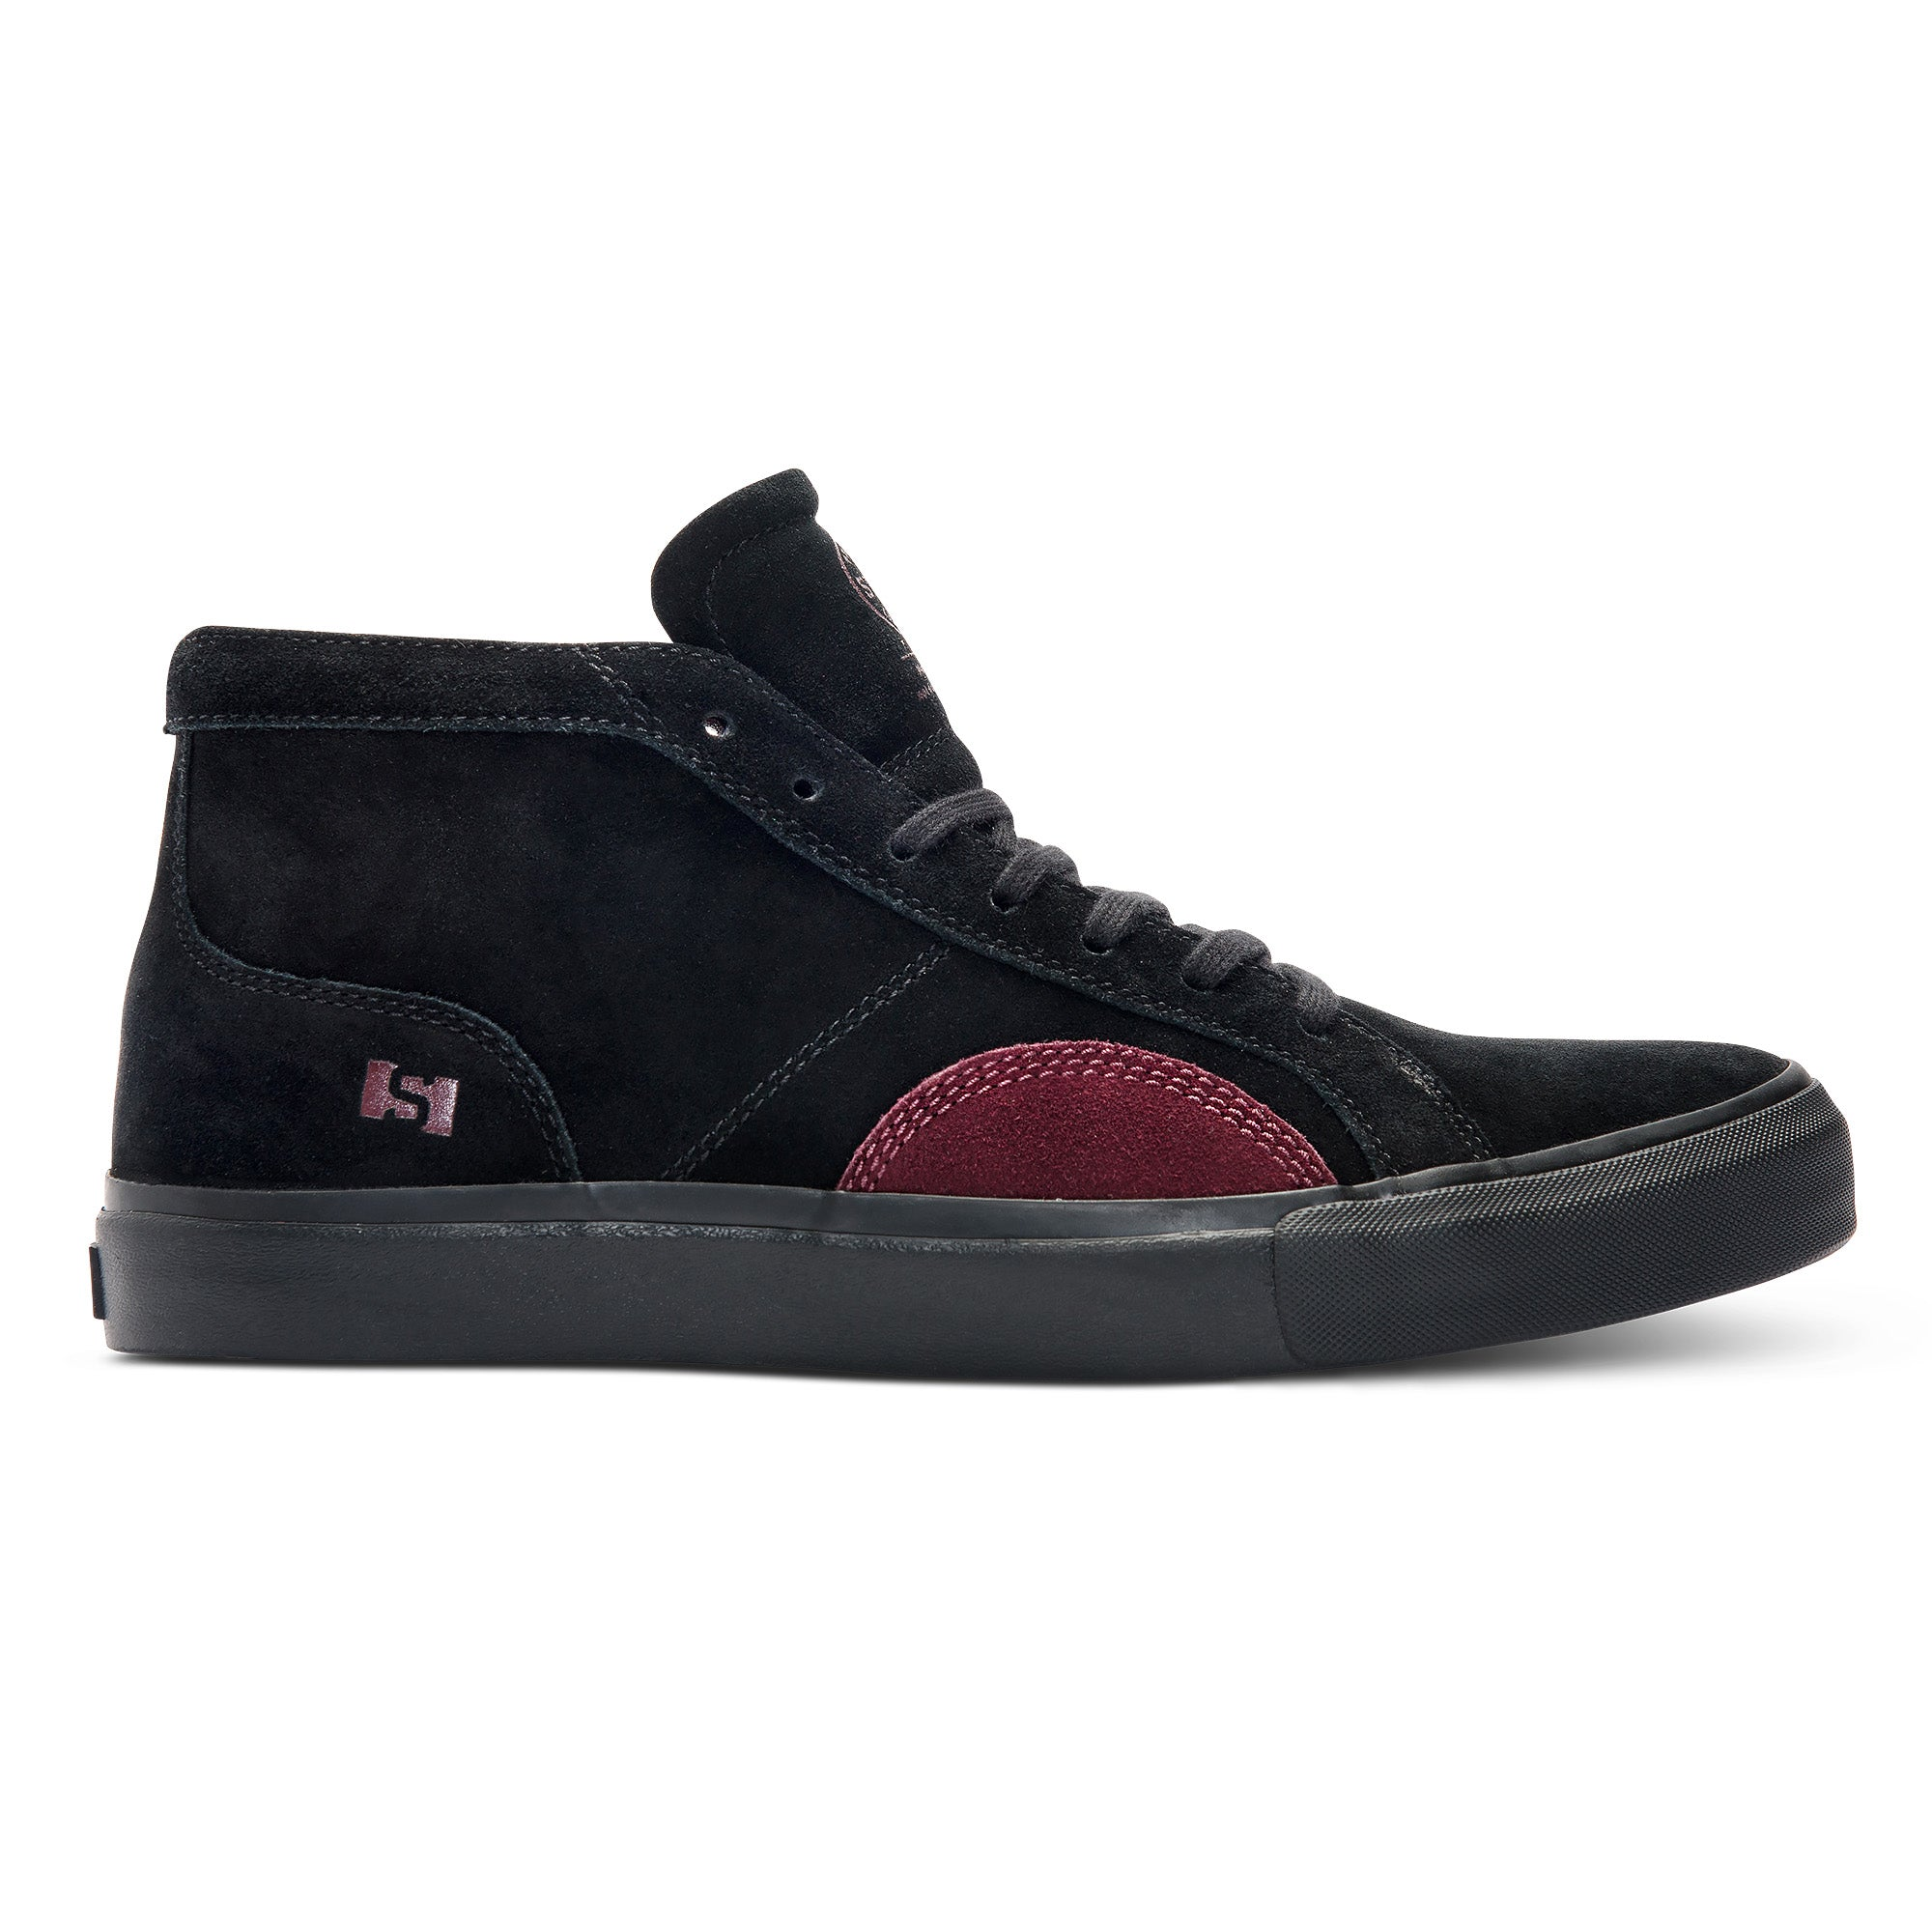 Salem Black/Black Cherry